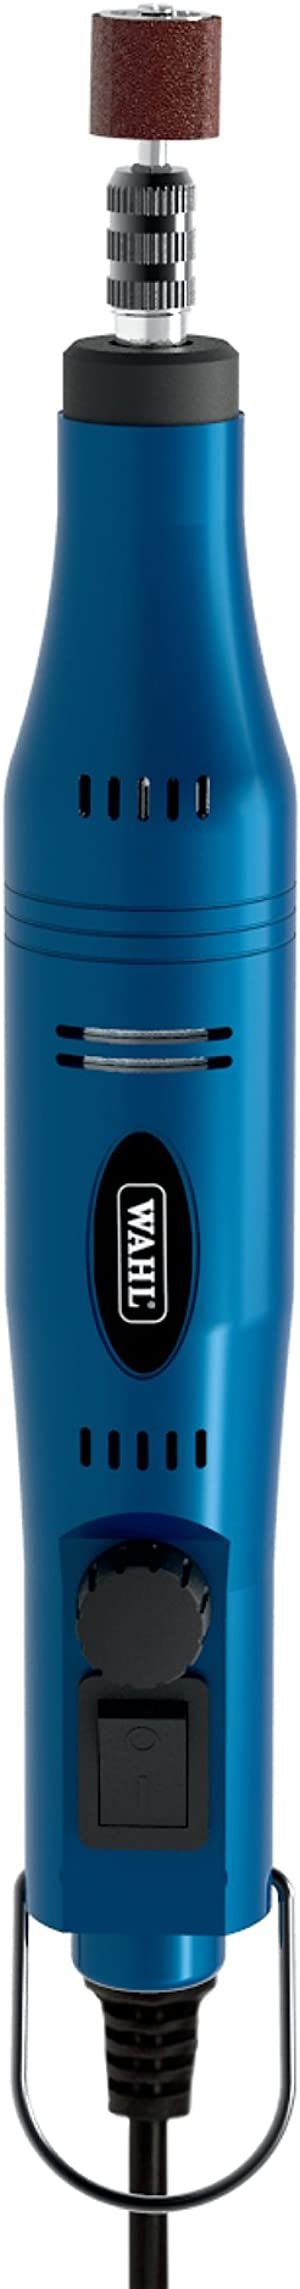 Wahl Professional Animal Pet, Dog, and Cat Ultimate Nail Grinder